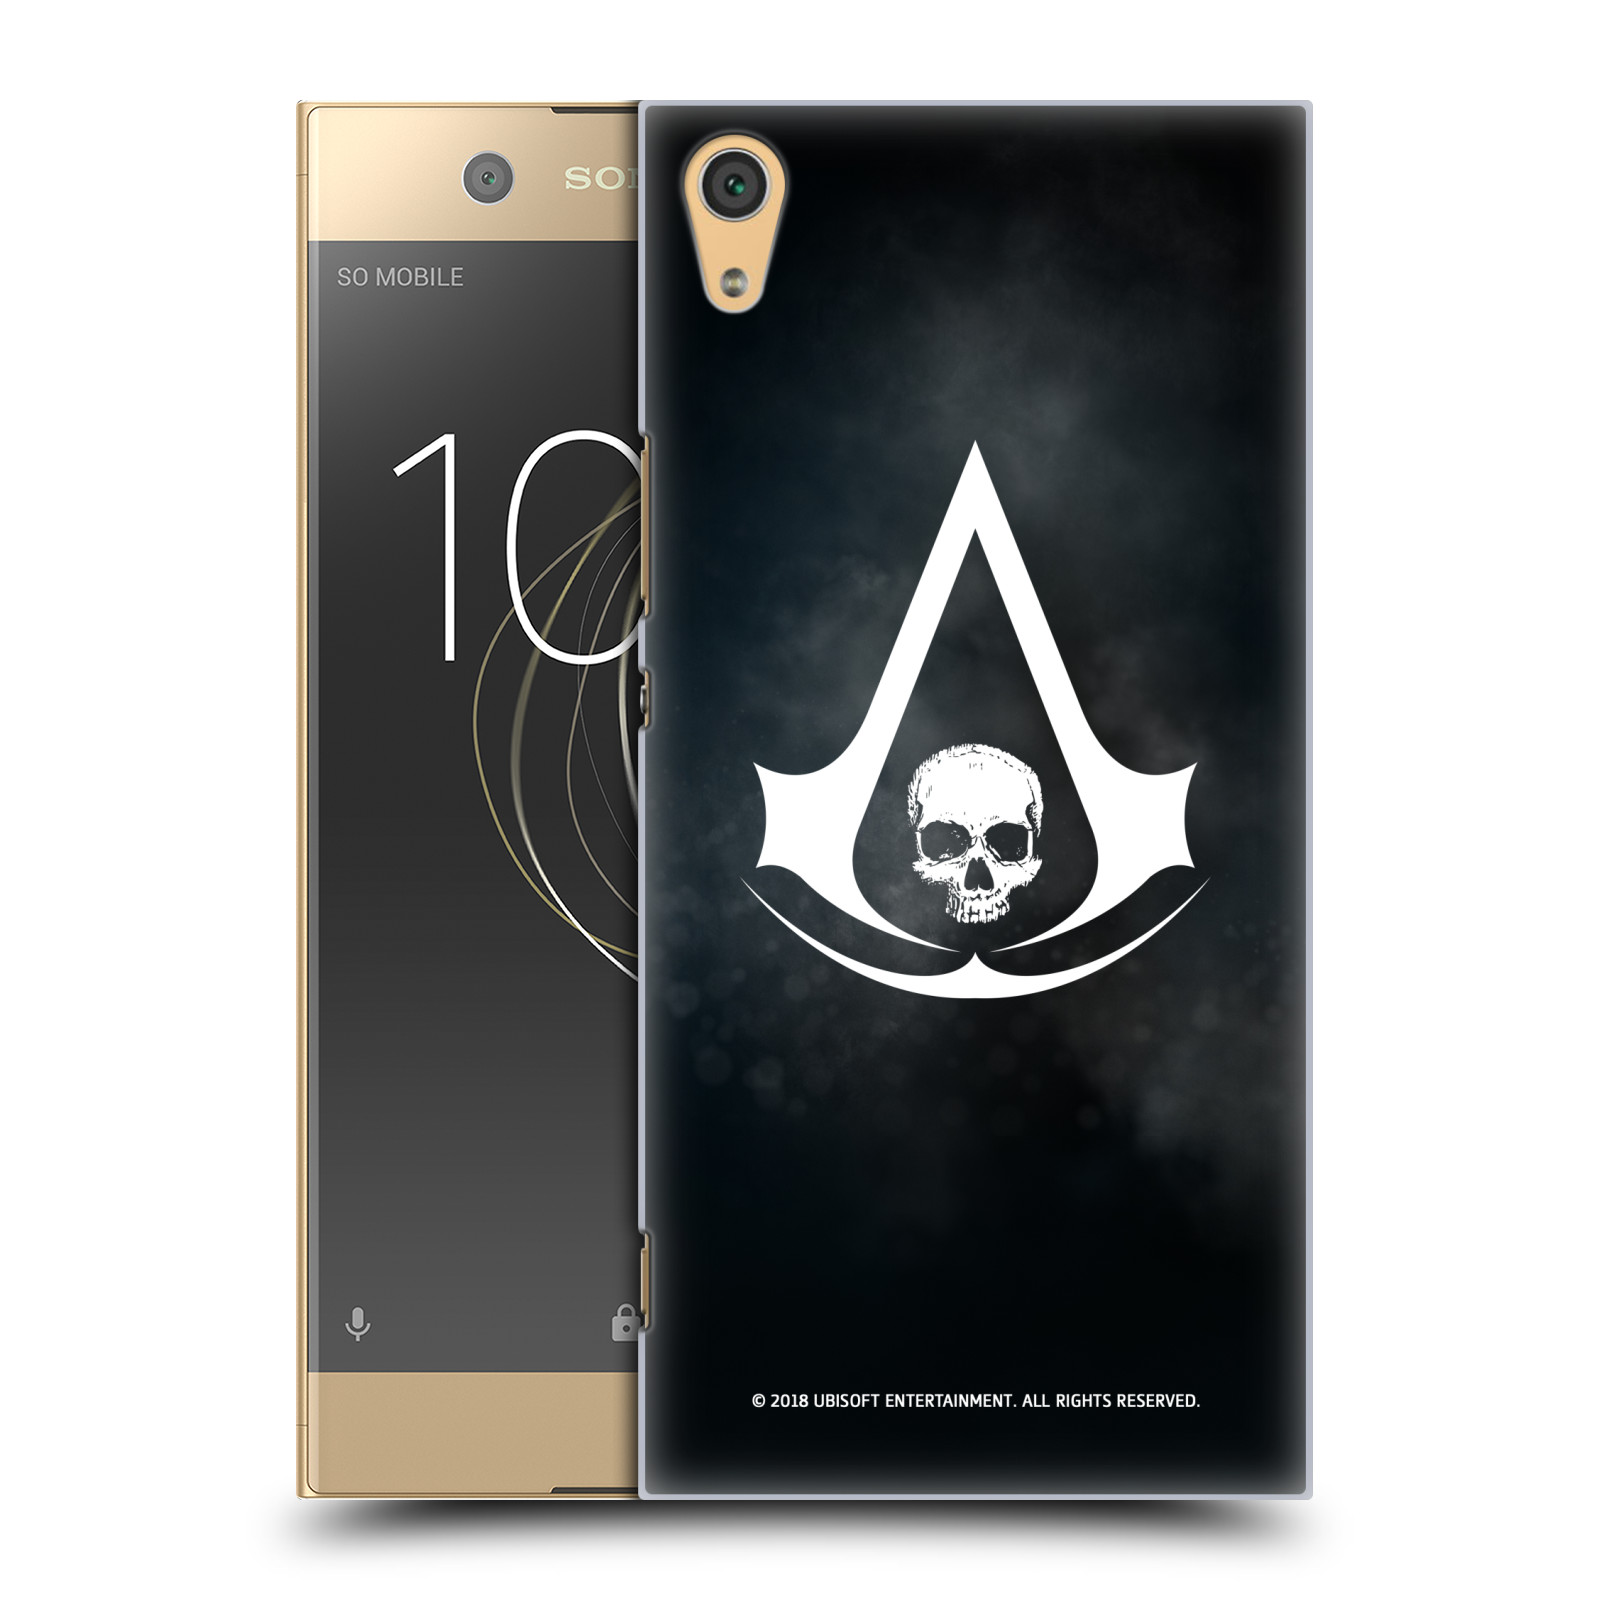 Pouzdro na mobil Sony Xperia XA1 ULTRA - HEAD CASE - Assasins Creed Black Flag - Velký znak